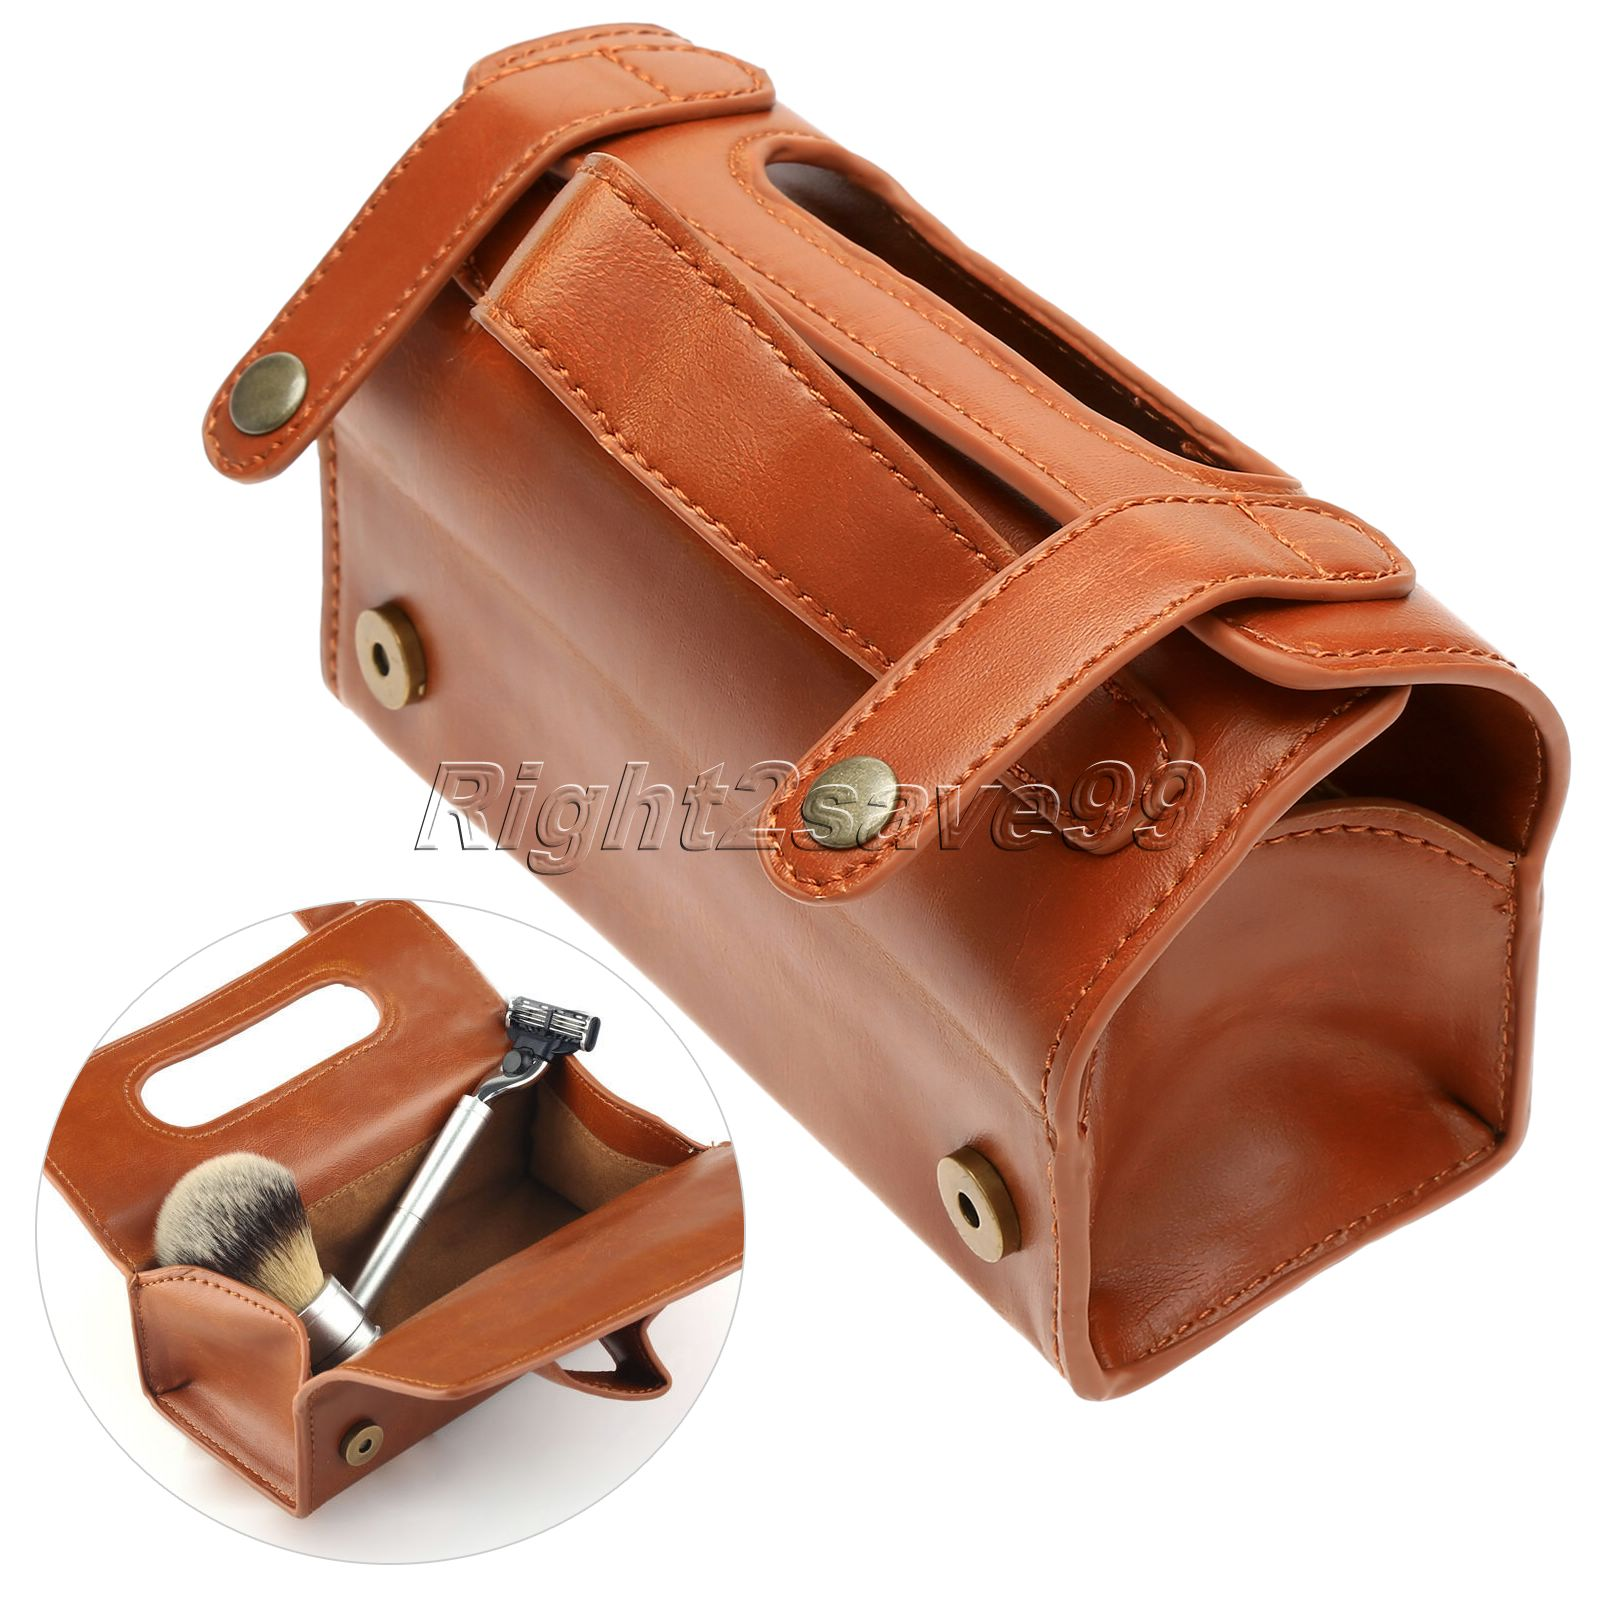 Leather Roll Out Travel Toiletry Bag